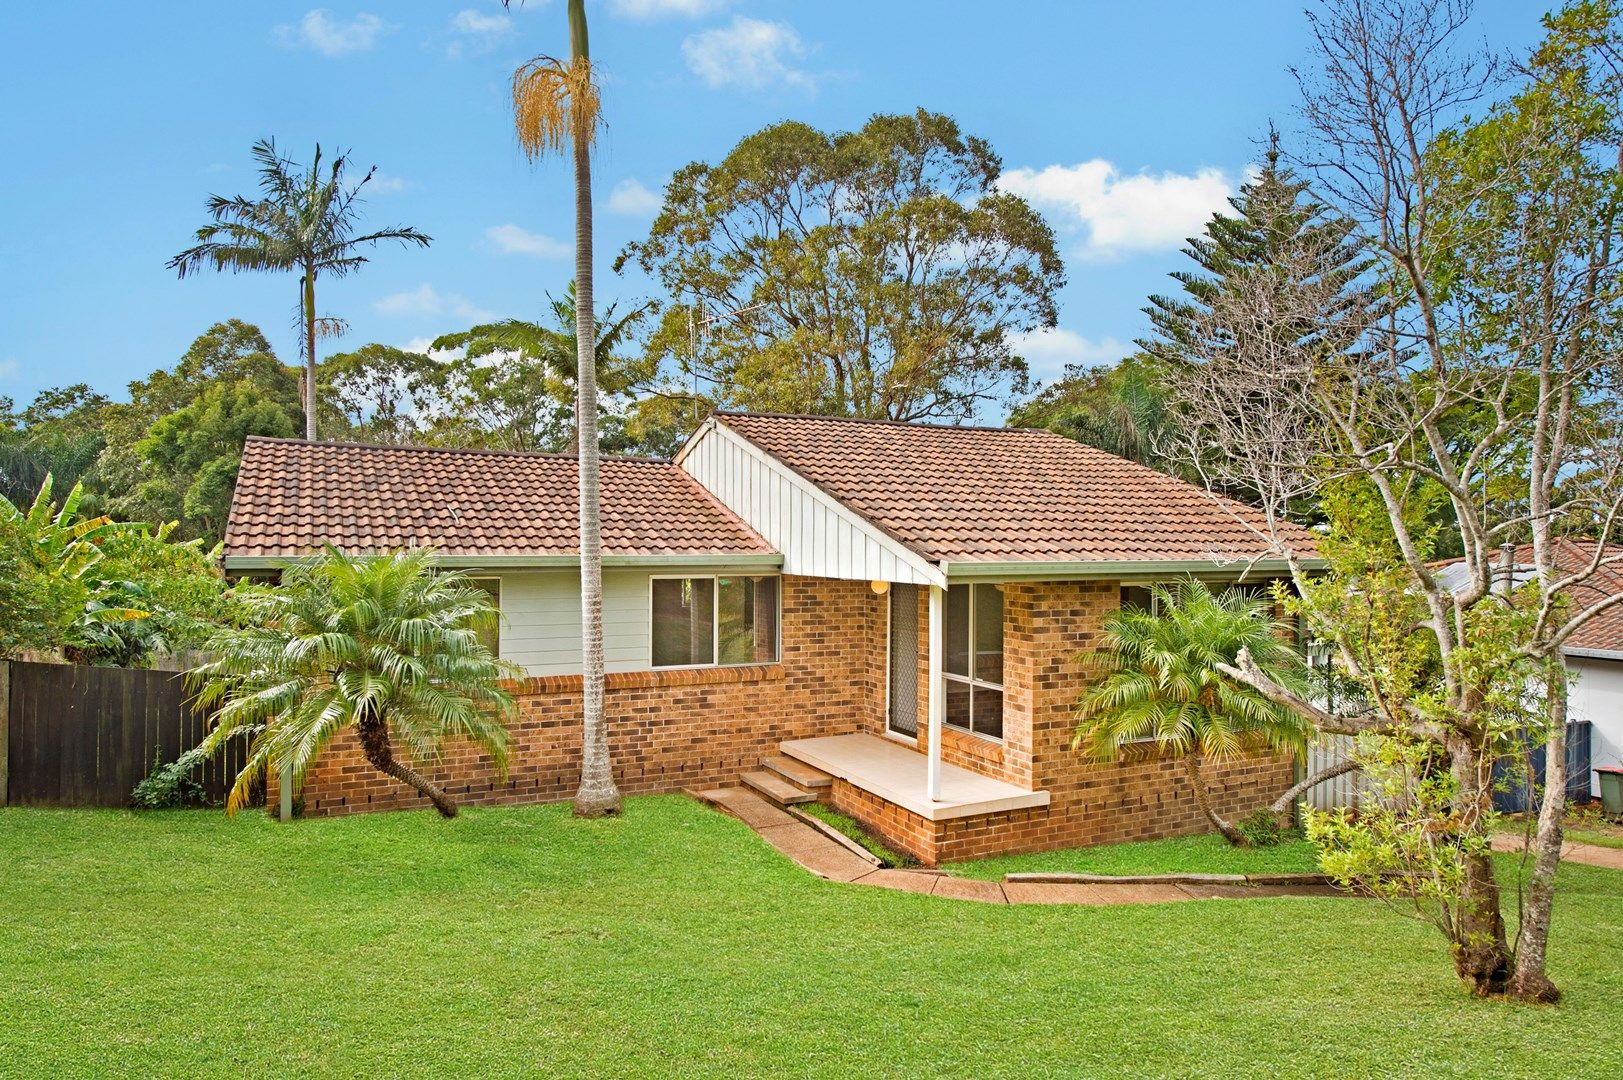 4 Allman Street, Port Macquarie NSW 2444, Image 0